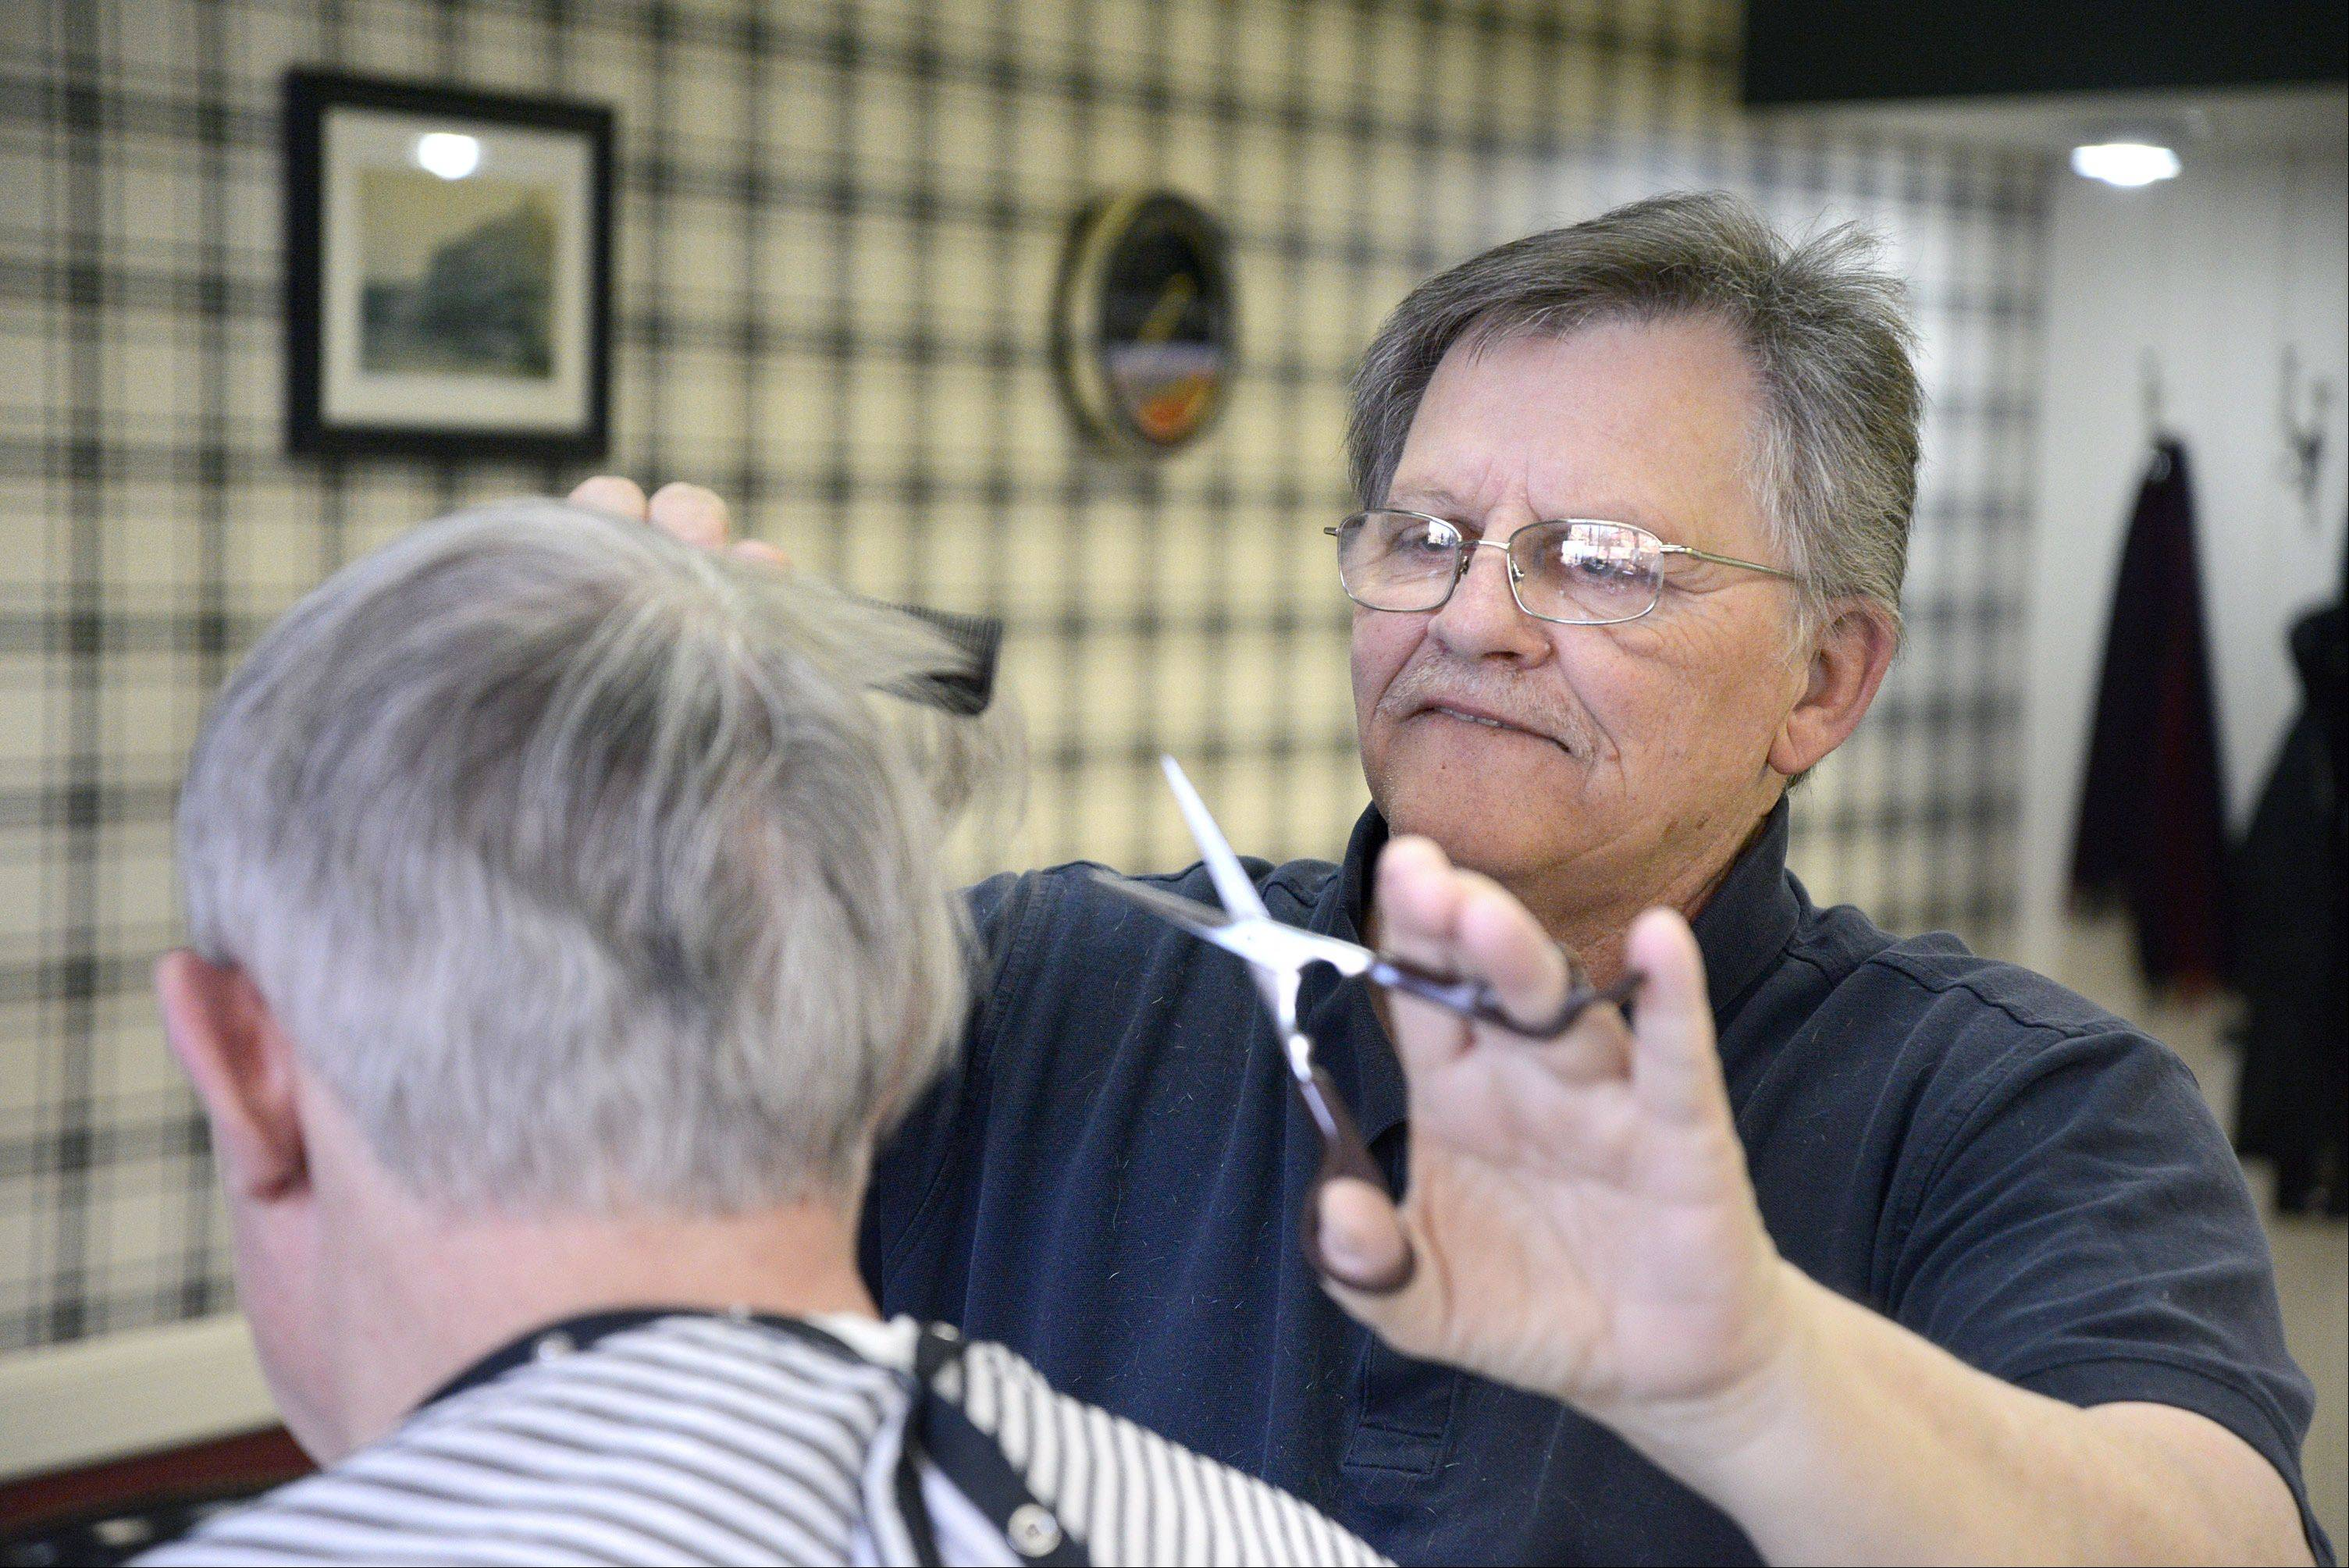 Barber Ron Saltzgiver gives William Hardey of North Aurora a trim in his shop this week. Saltzgiver is closing Berry's Barbershop Saturday. Busy to the end, Hardey was Saltzgiver's 18th of 26 clients Wednesday.